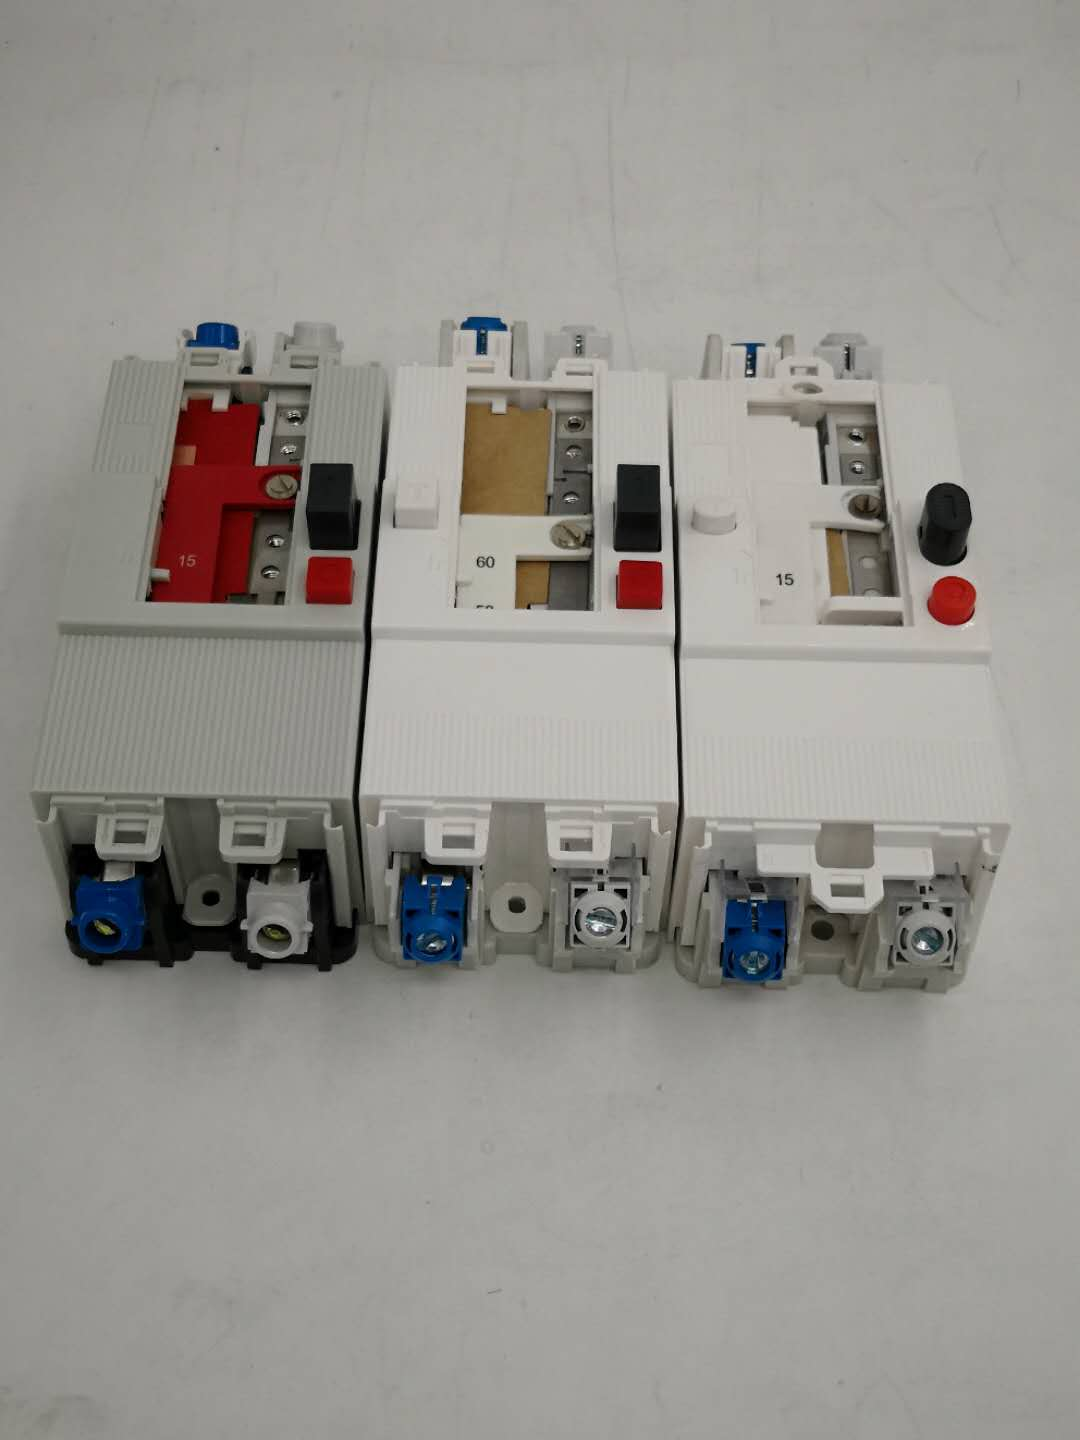 PG 2P/4P adjustable circuit breaker with leakage protection